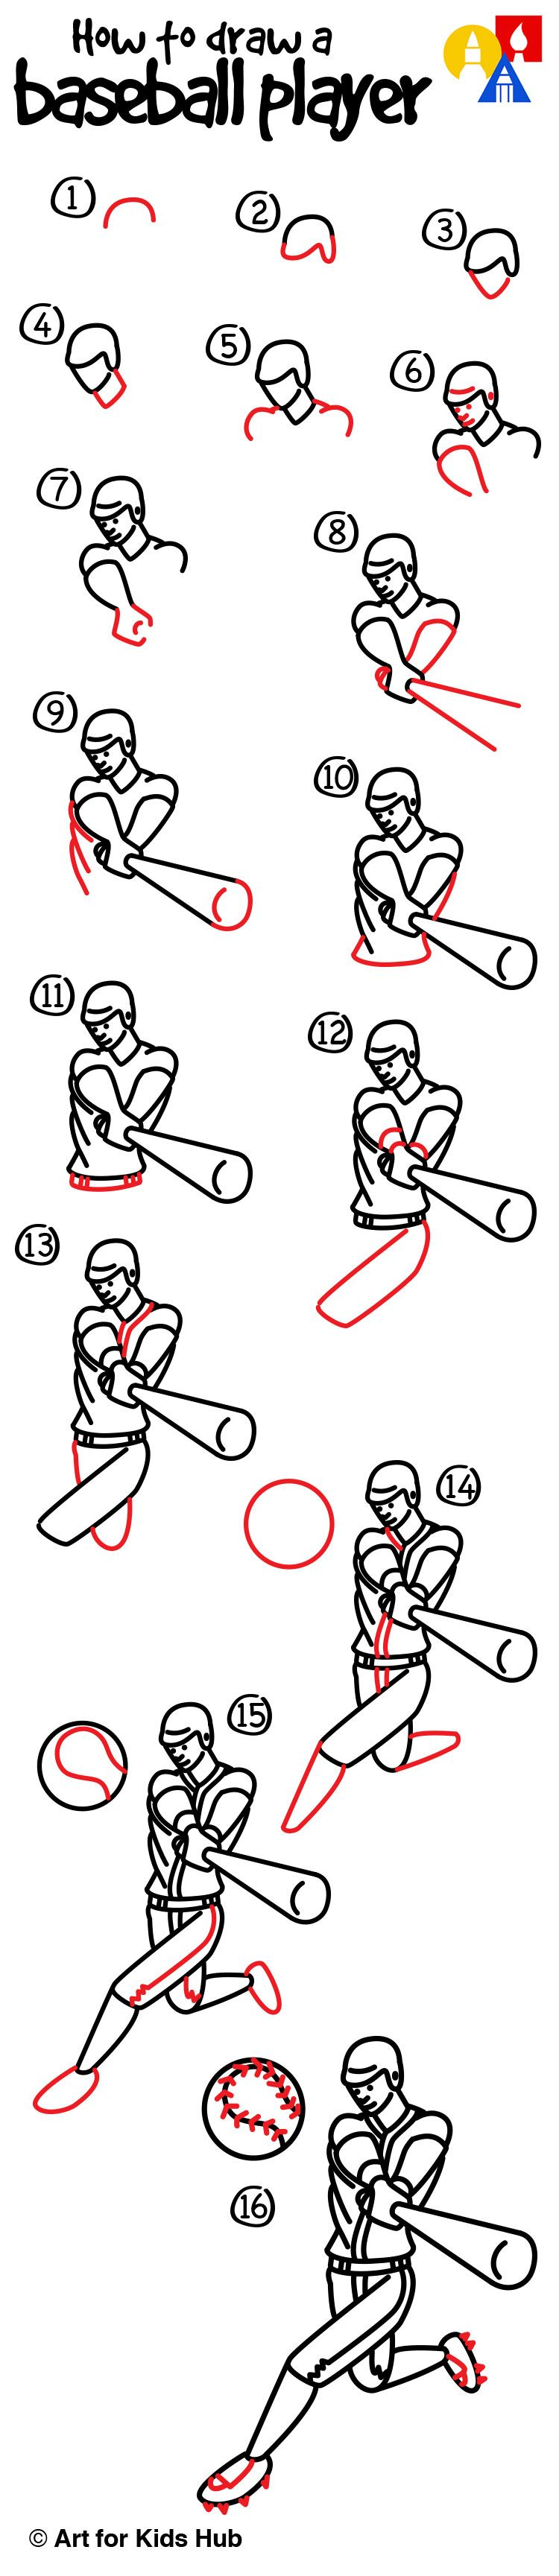 How To Draw A Baseball Player Art For Kids Hub With Images